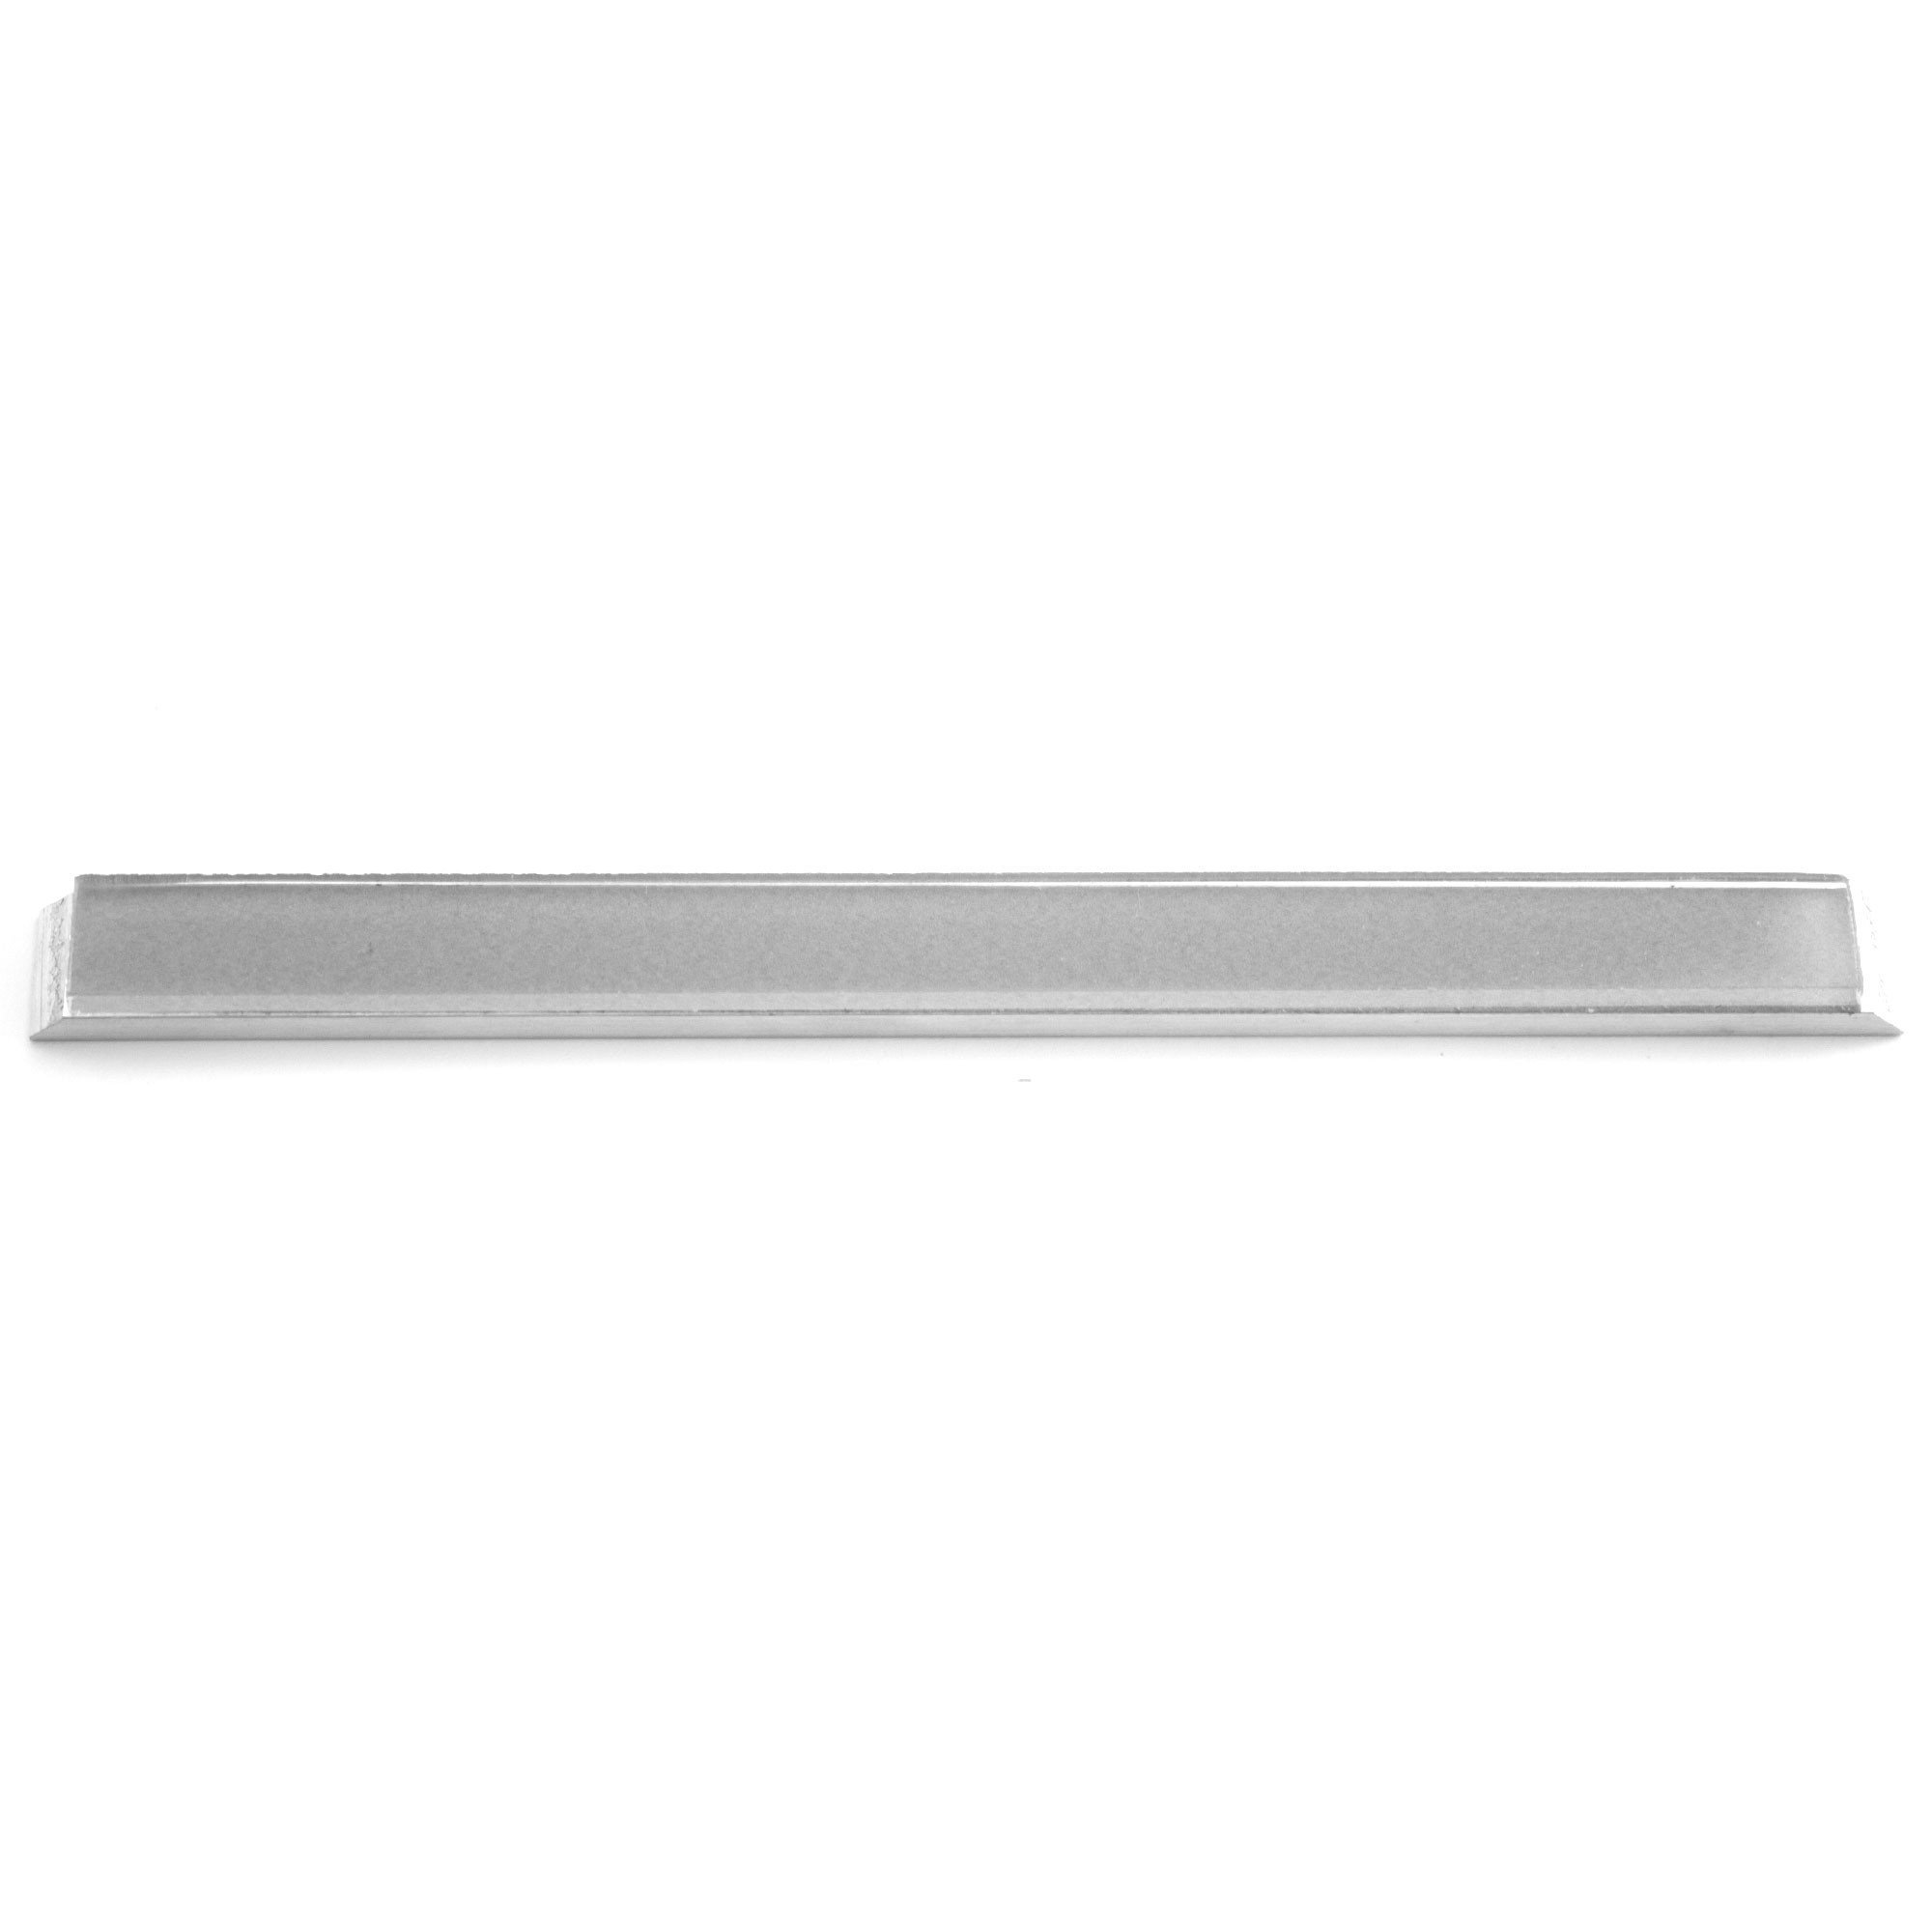 Narrow Glass Blank 6'' x 0.5'' with Aluminum Mounting for Edge Pro (For Recurve Blades)